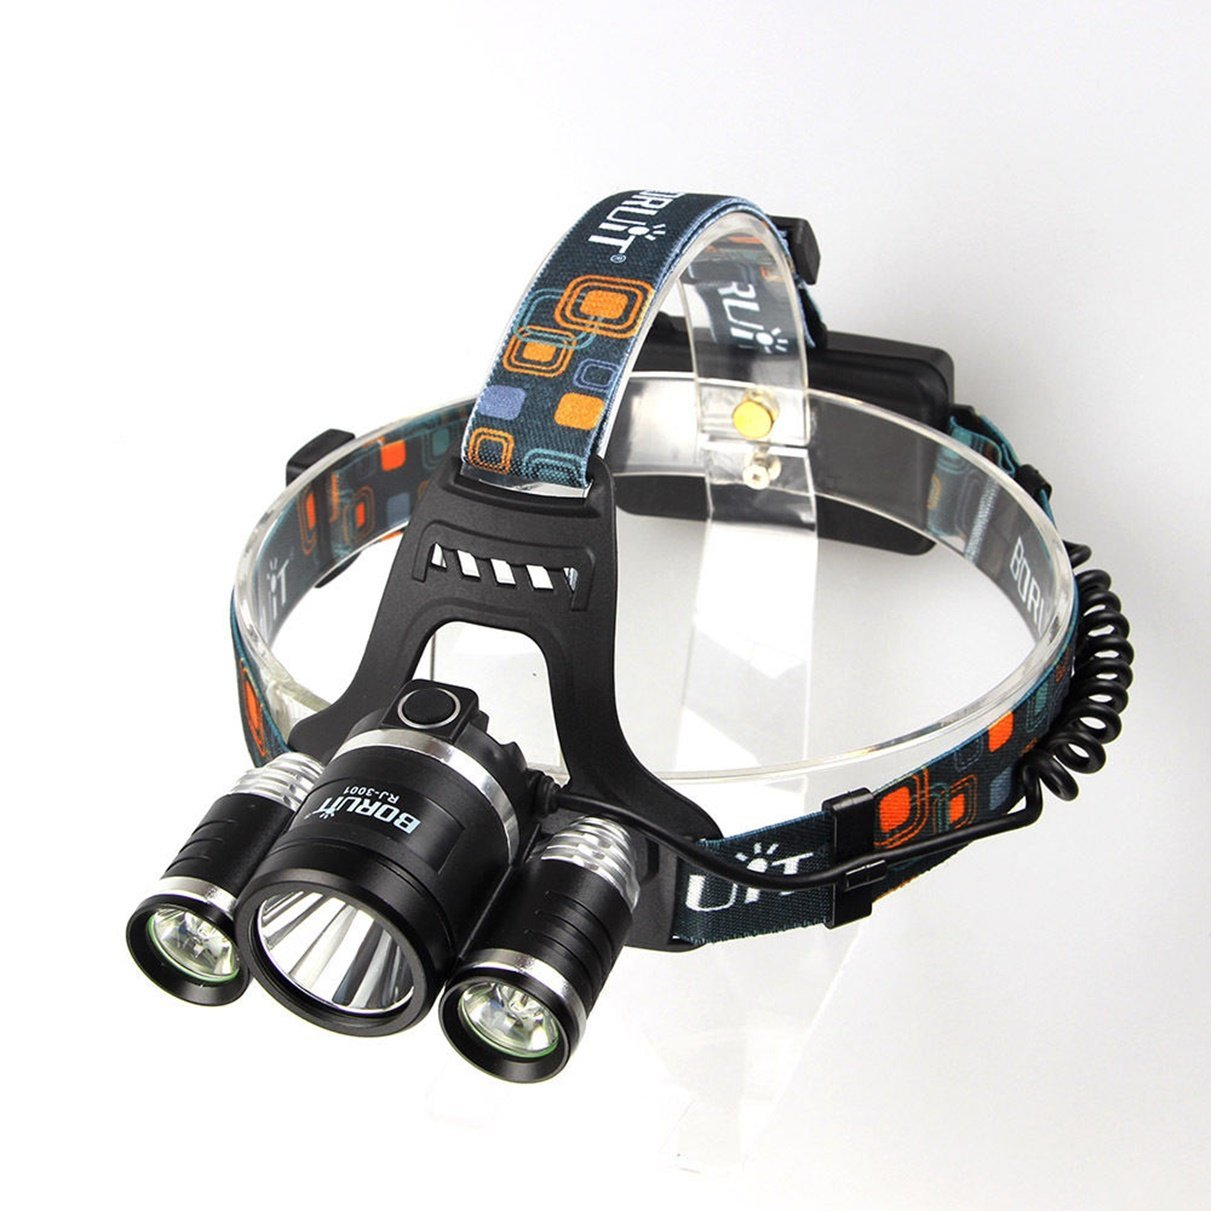 1 Pc Glistening Unique LEDs Flashlight Headlight Headlamp 6000 Lumens Headlamps Headlights Bright Waterproof Zoomable Tactical Camping Hunting Torch Color Black with Rechargeable Wall and USB Charger